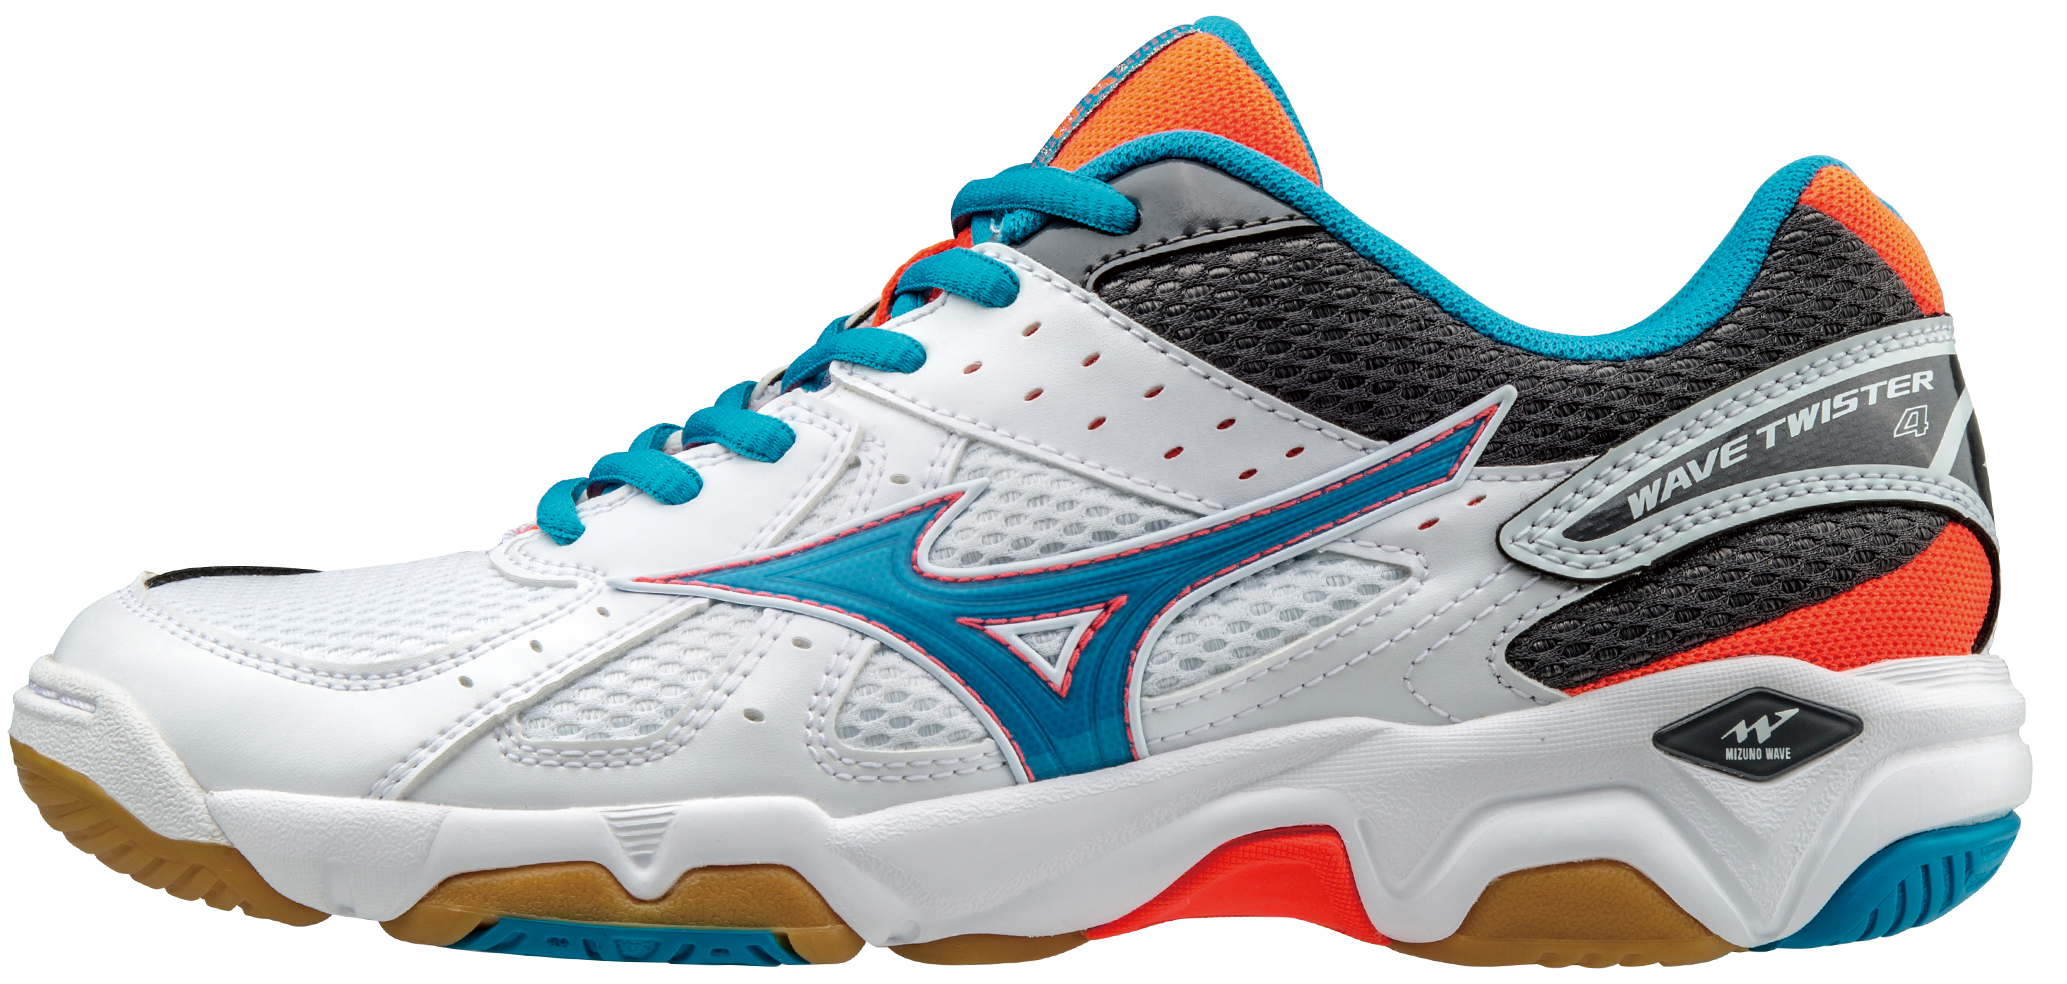 mizuno-wave-twister_1633.jpg